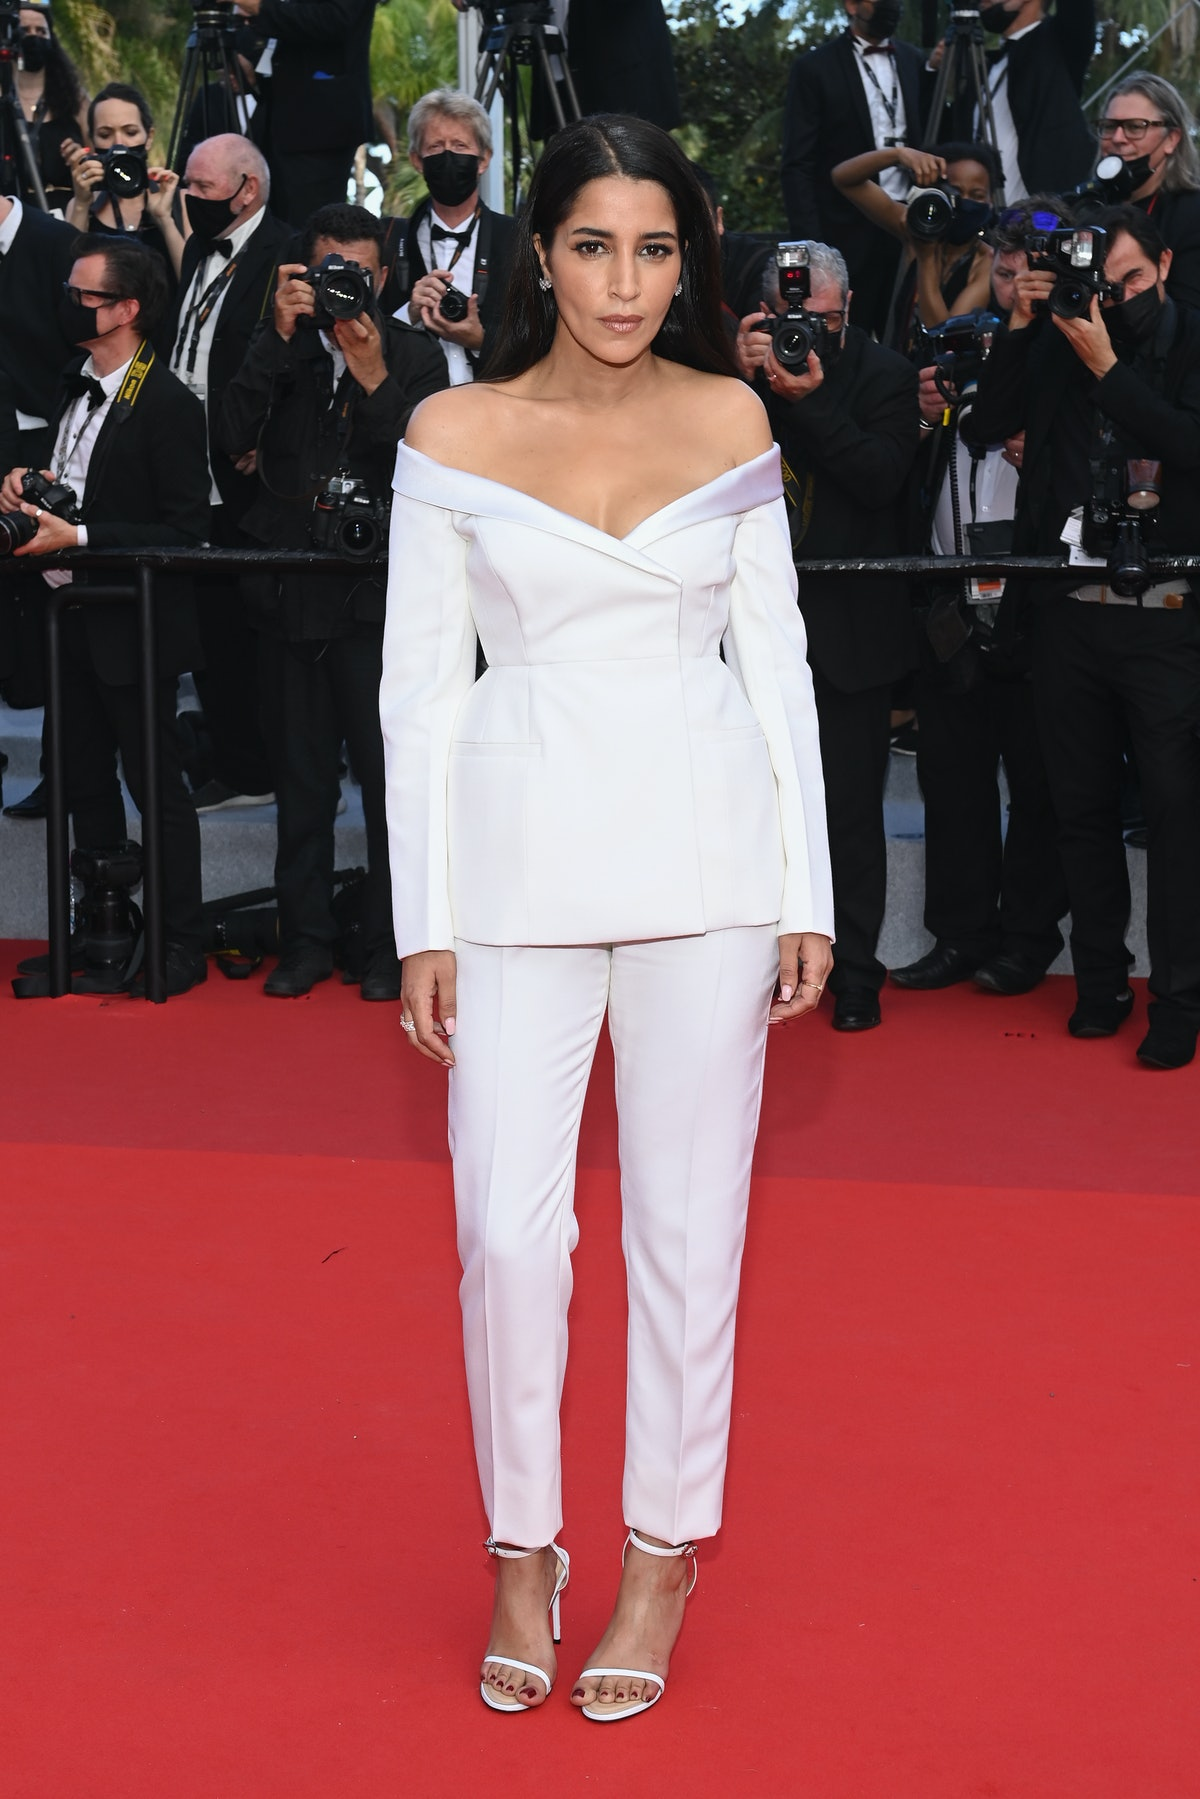 """CANNES, FRANCE - JULY 06: Leila Bekhti attends the """"Annette"""" screening and opening ceremony during the 74th annual Cannes Film Festival on July 06, 2021 in Cannes, France. (Photo by Pascal Le Segretain/Getty Images)"""